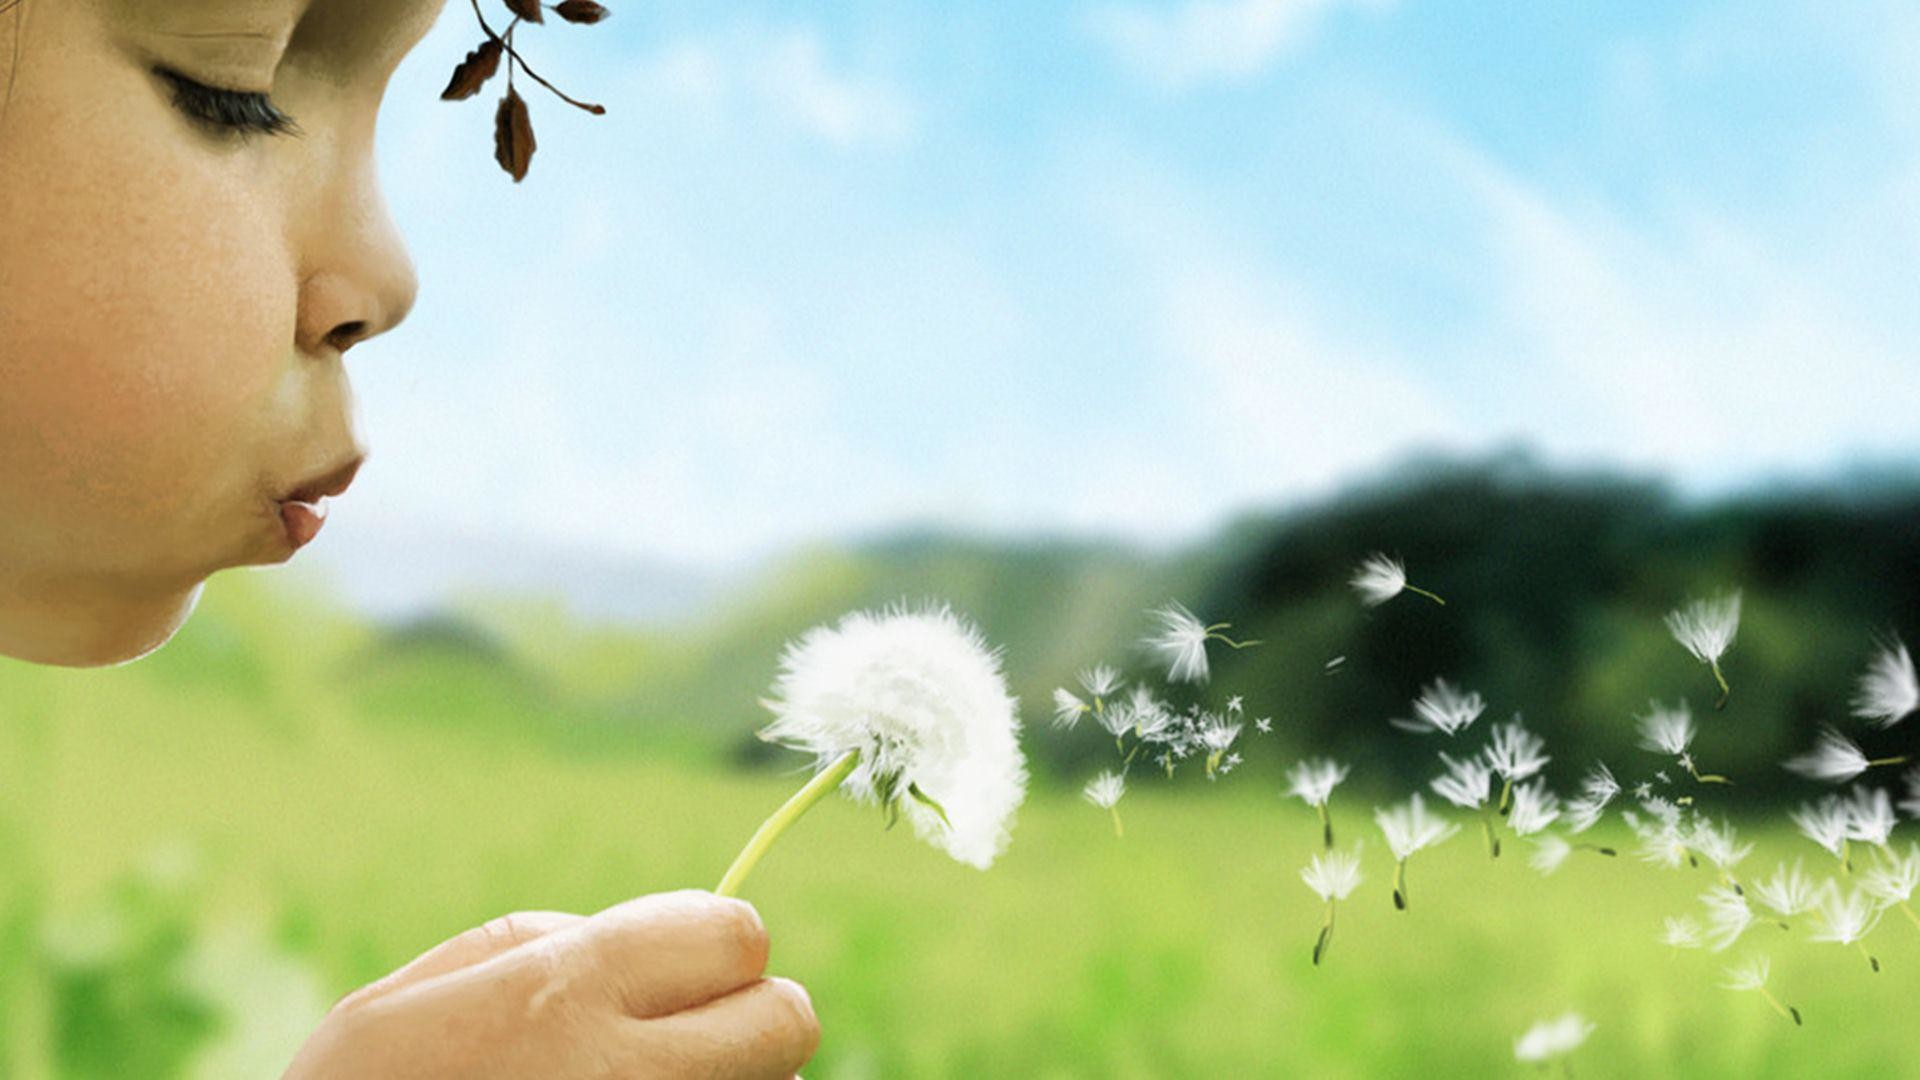 Child Girl Blowing Dandelion (Taraxacum) Flower wallpaper thumb